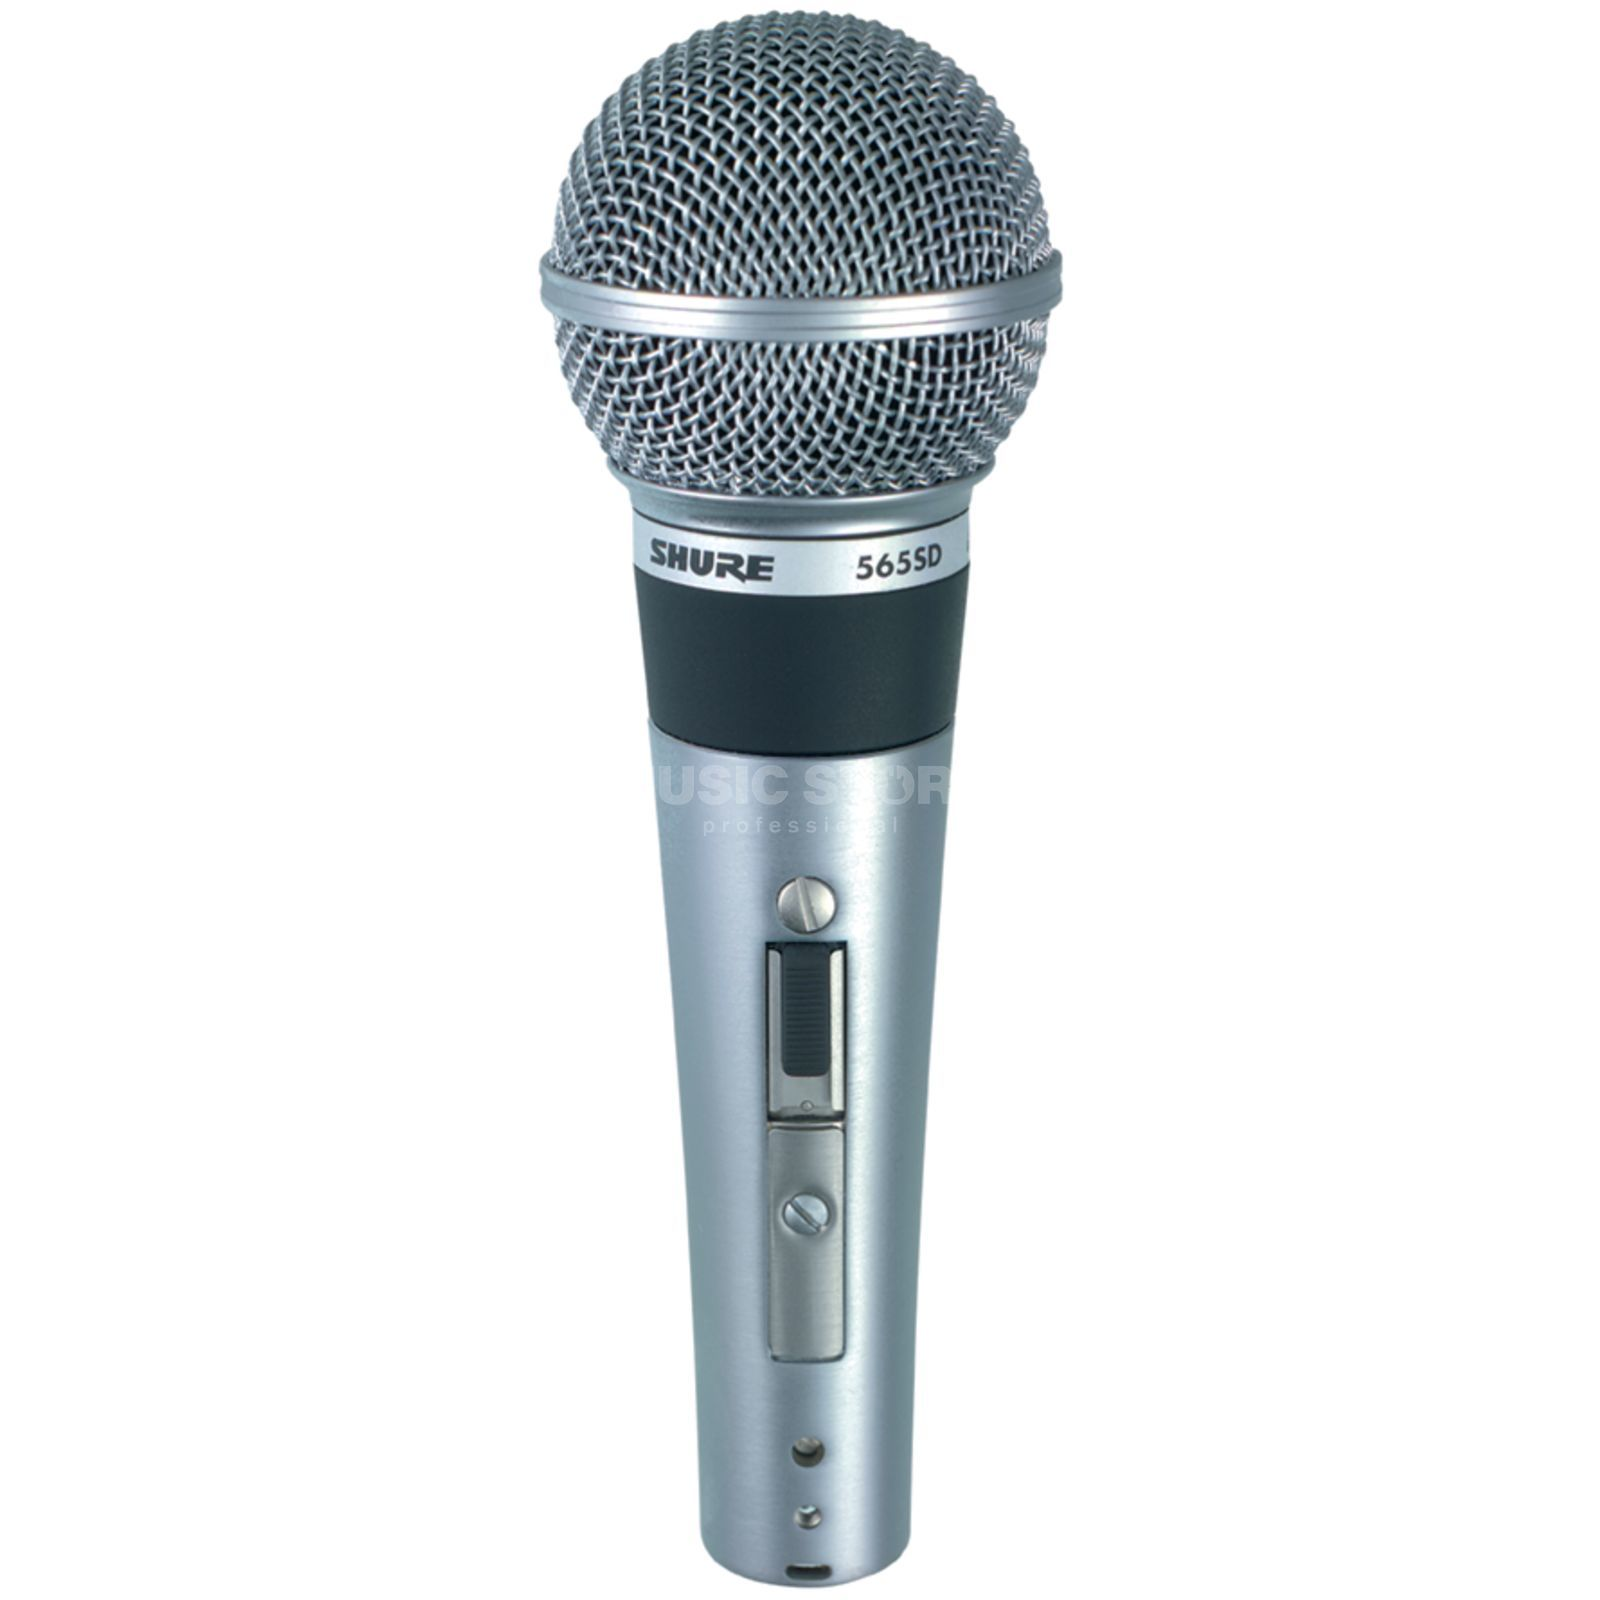 Shure 565SD Product Image